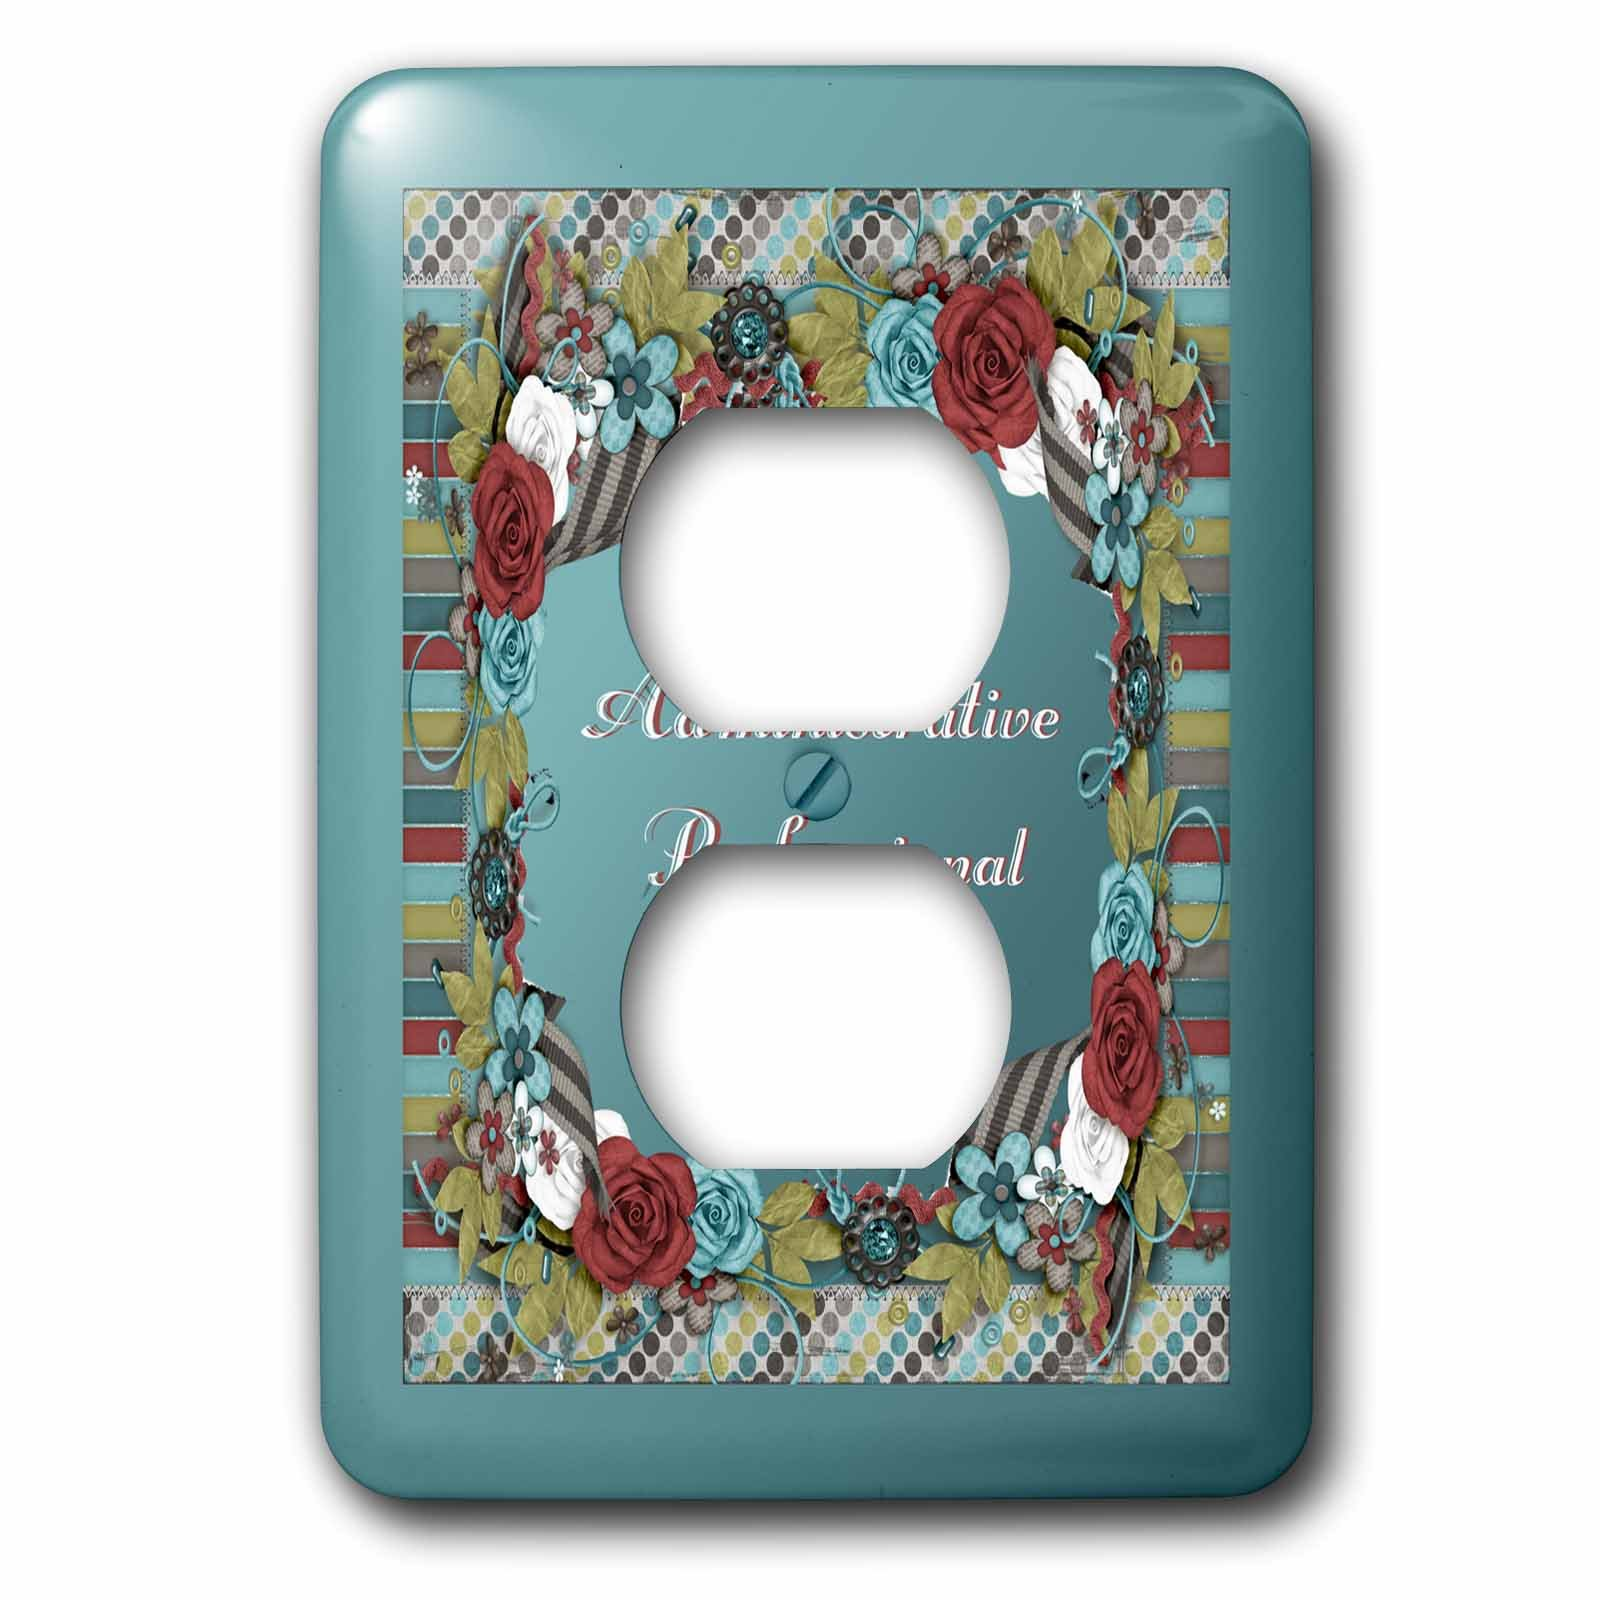 Beverly Turner Administrative Professionals Day - Frame of Flowers, Strips, Circles, Administrative Professionals Day - Light Switch Covers - 2 plug outlet cover (lsp_239565_6)